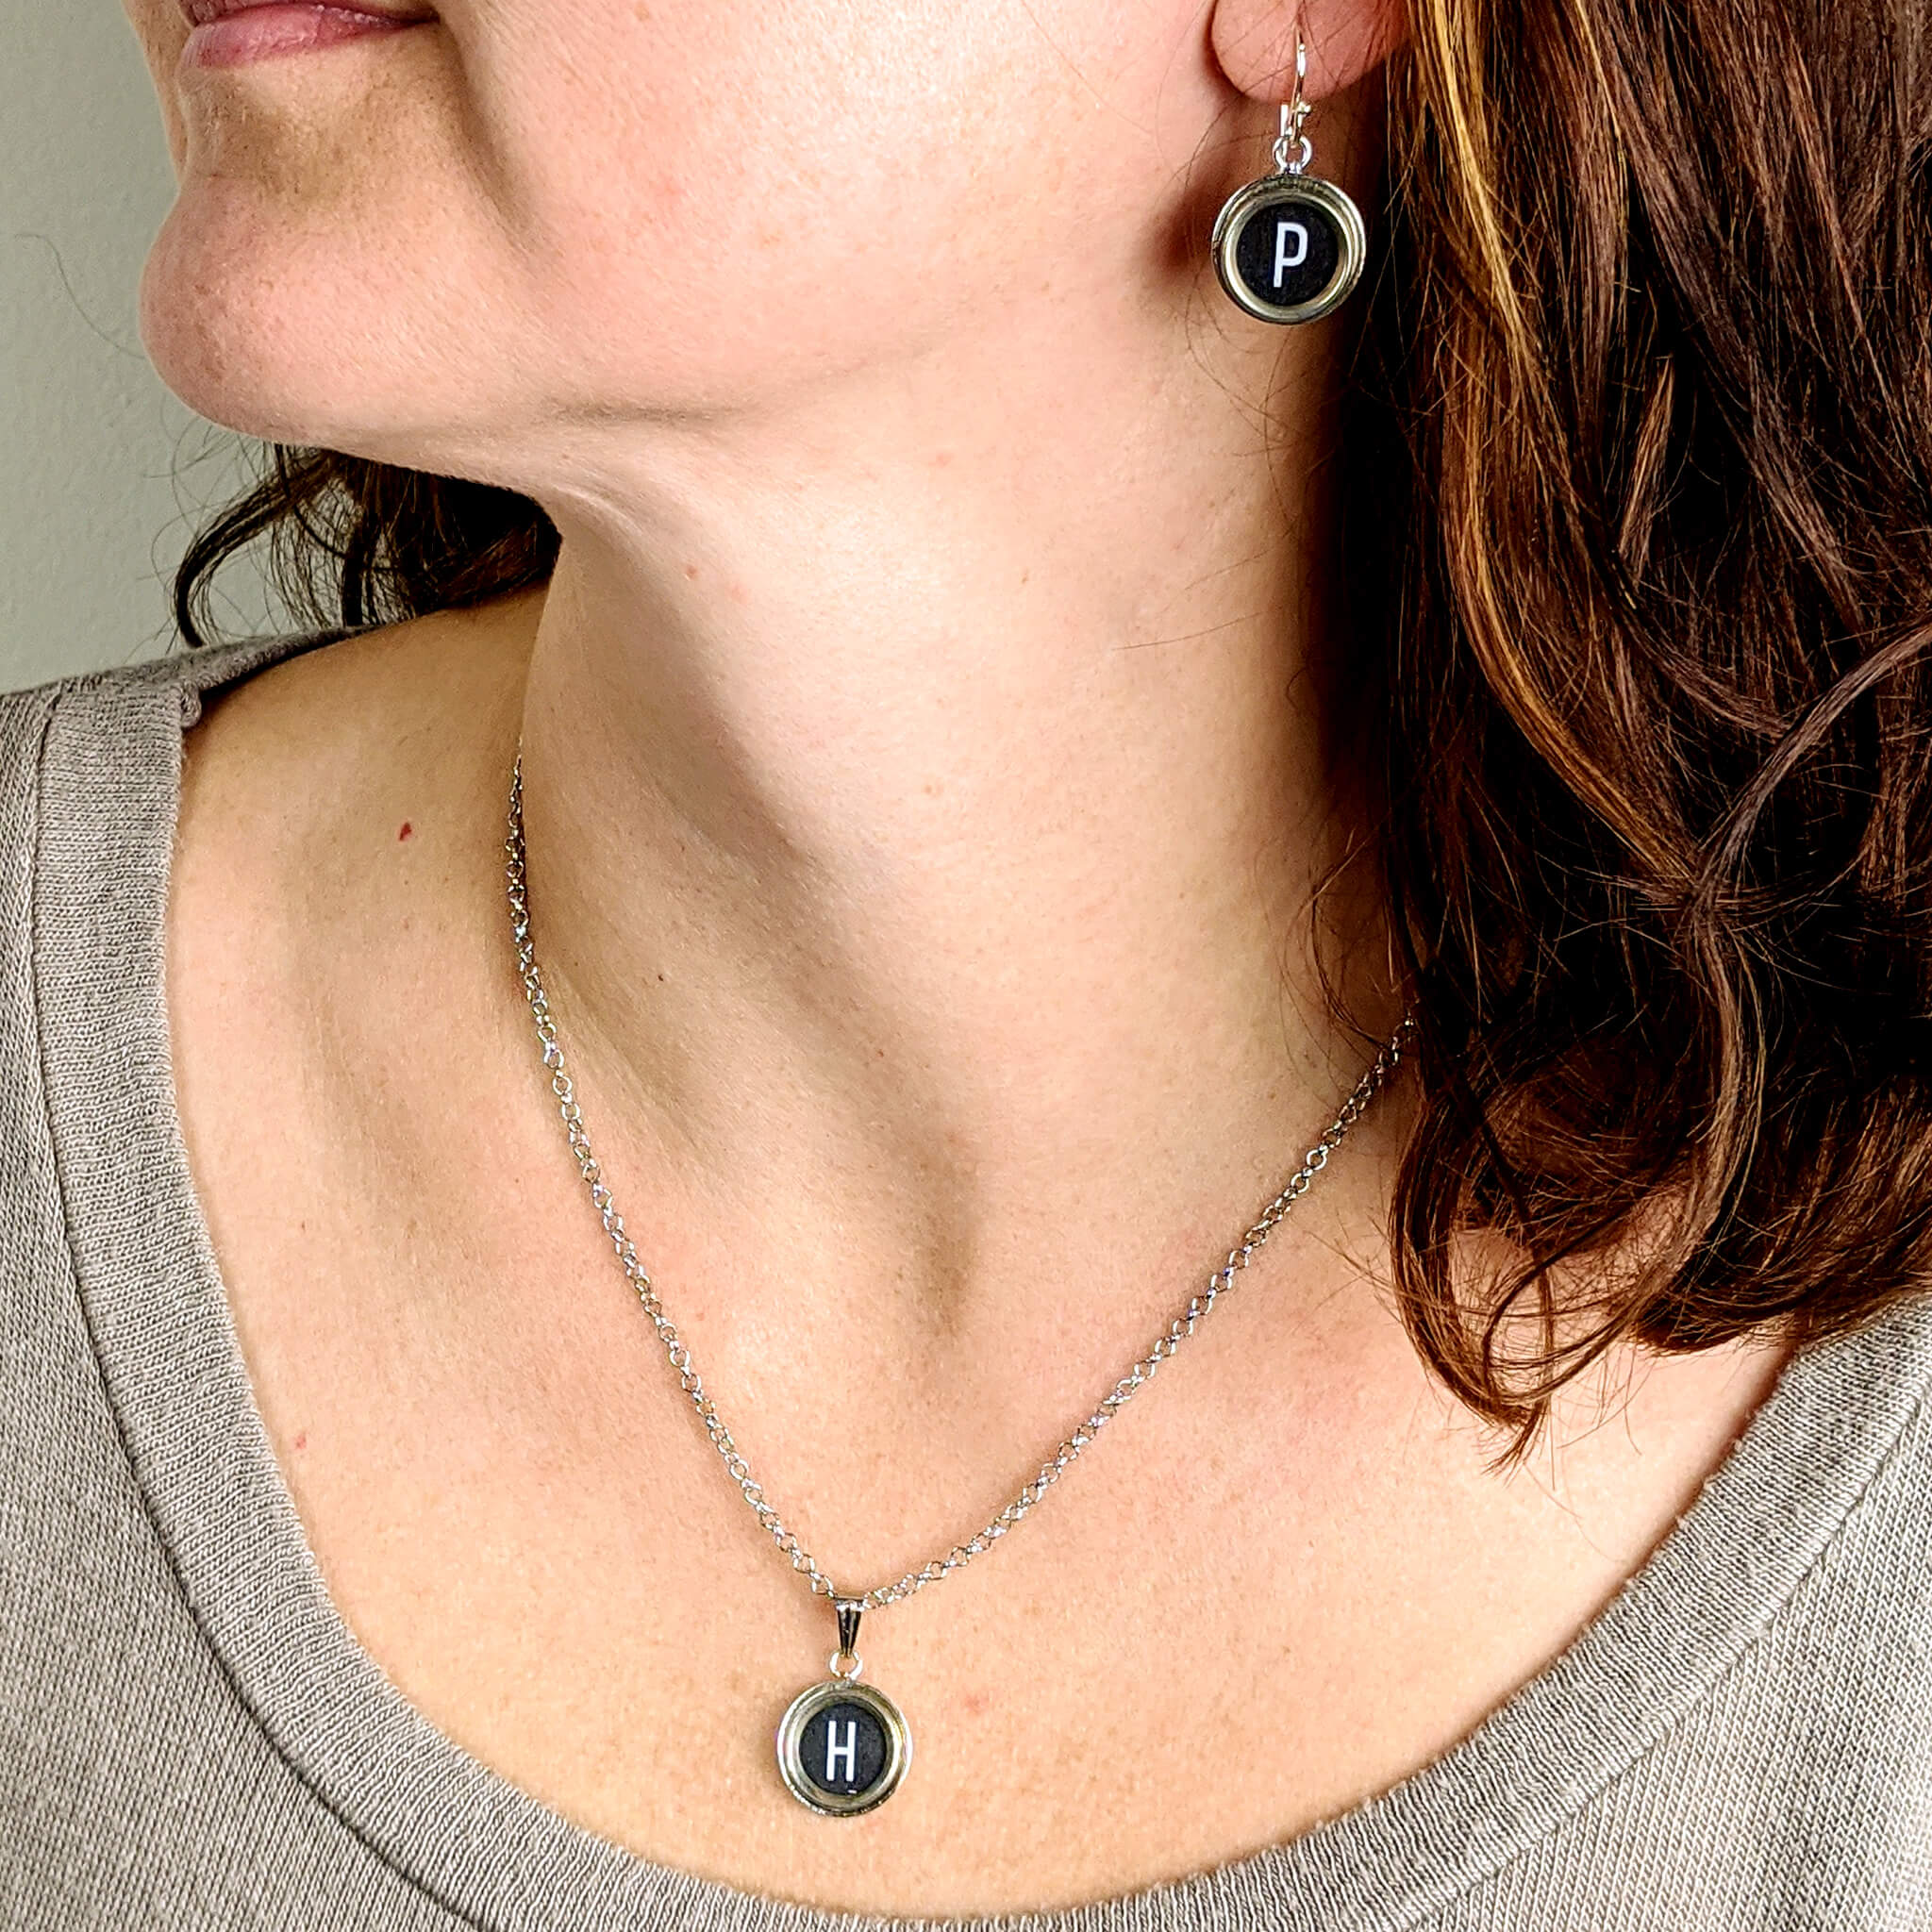 Woman wearing typewriter key necklace and earrings